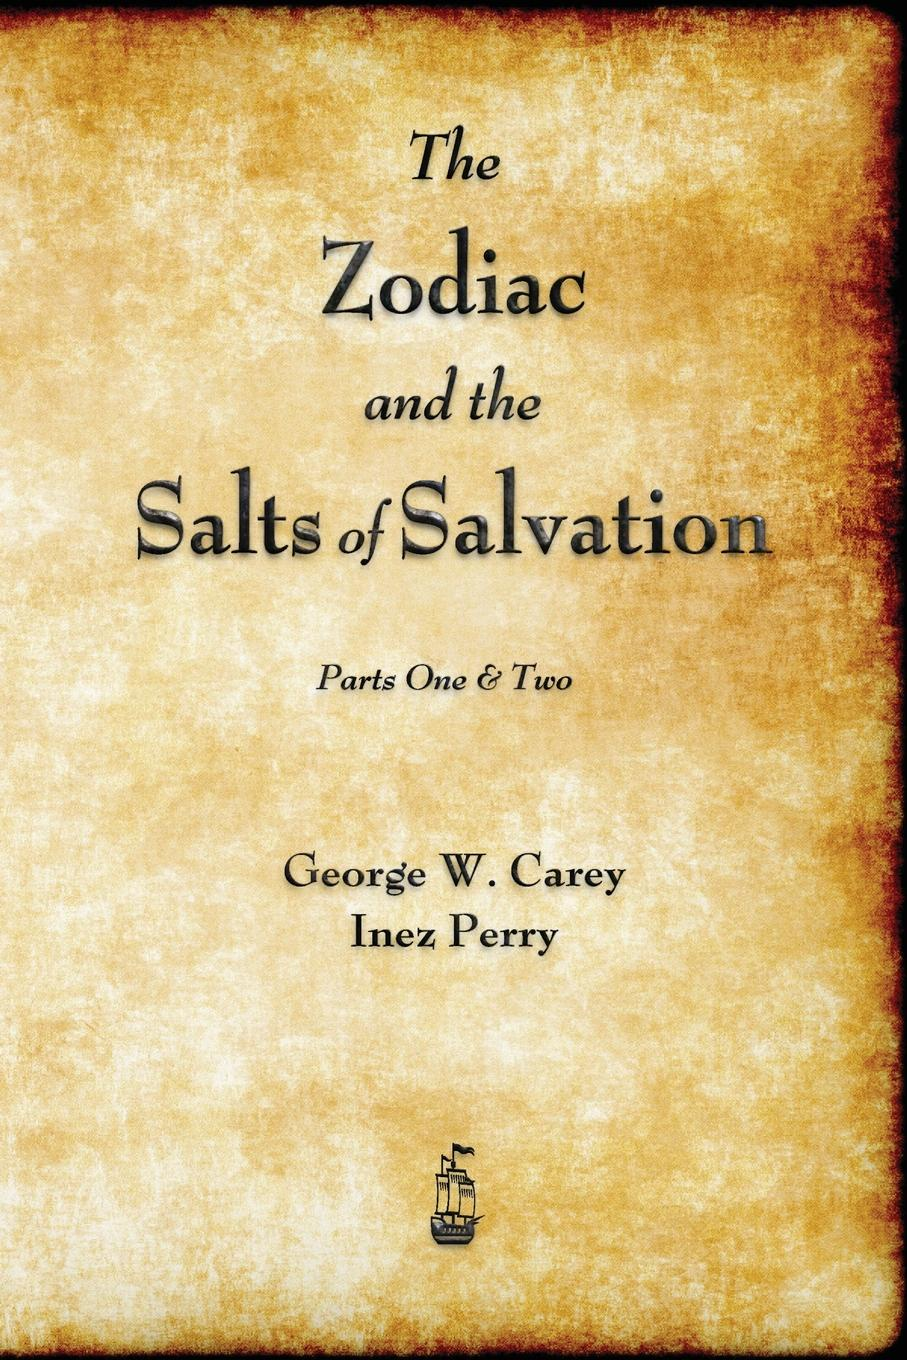 George W. Carey, Inez Perry The Zodiac and the Salts of Salvation. Parts One and Two